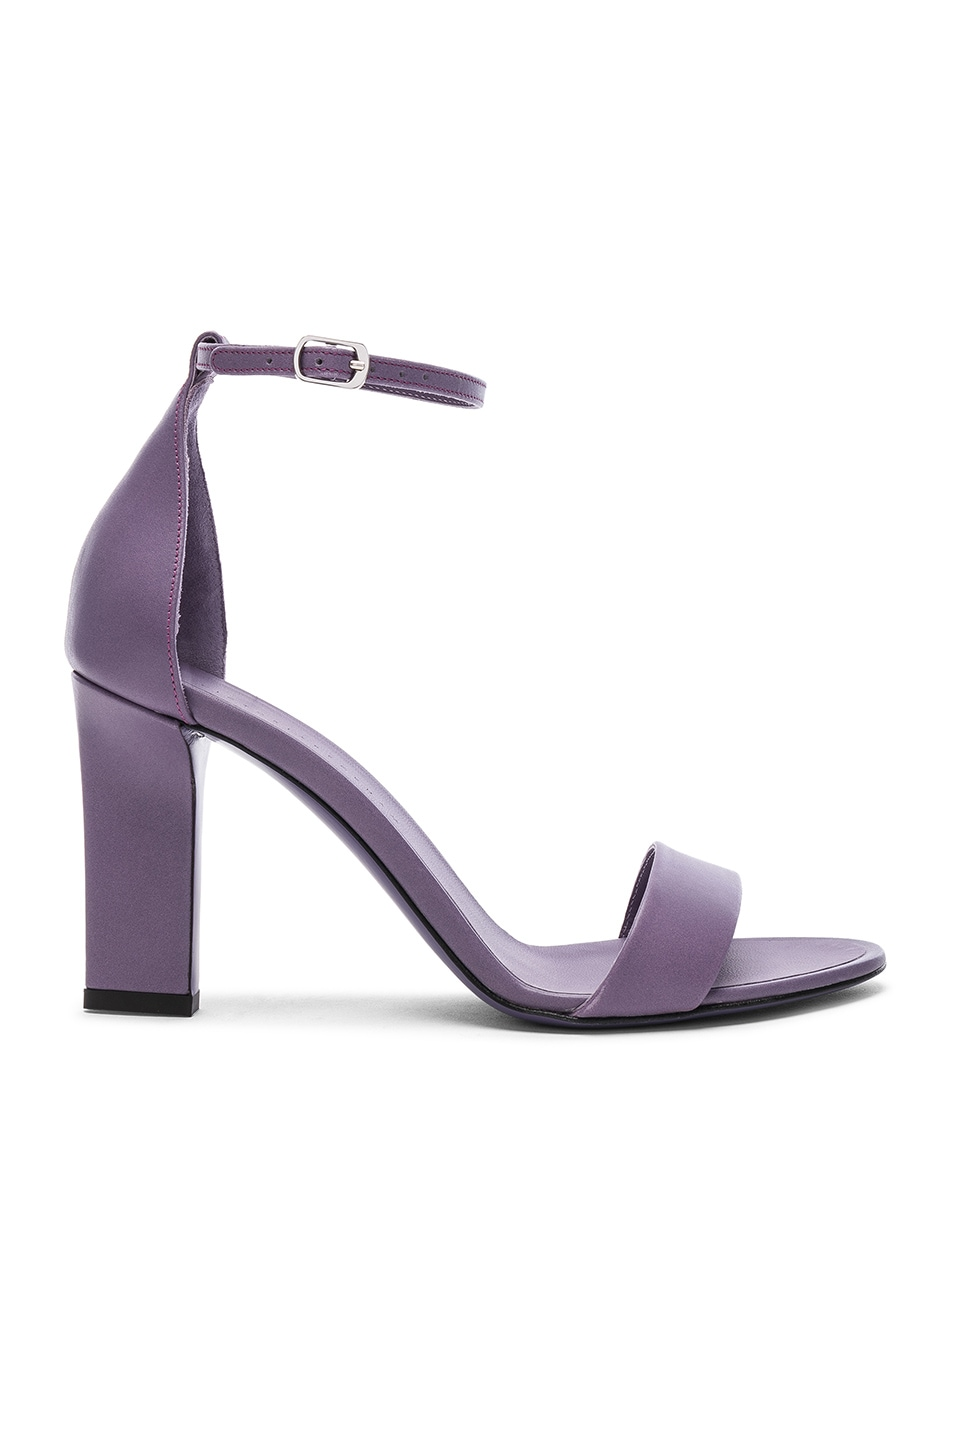 Image 1 of Victoria Beckham Leather Anna Ankle Strap Sandals in Lilac